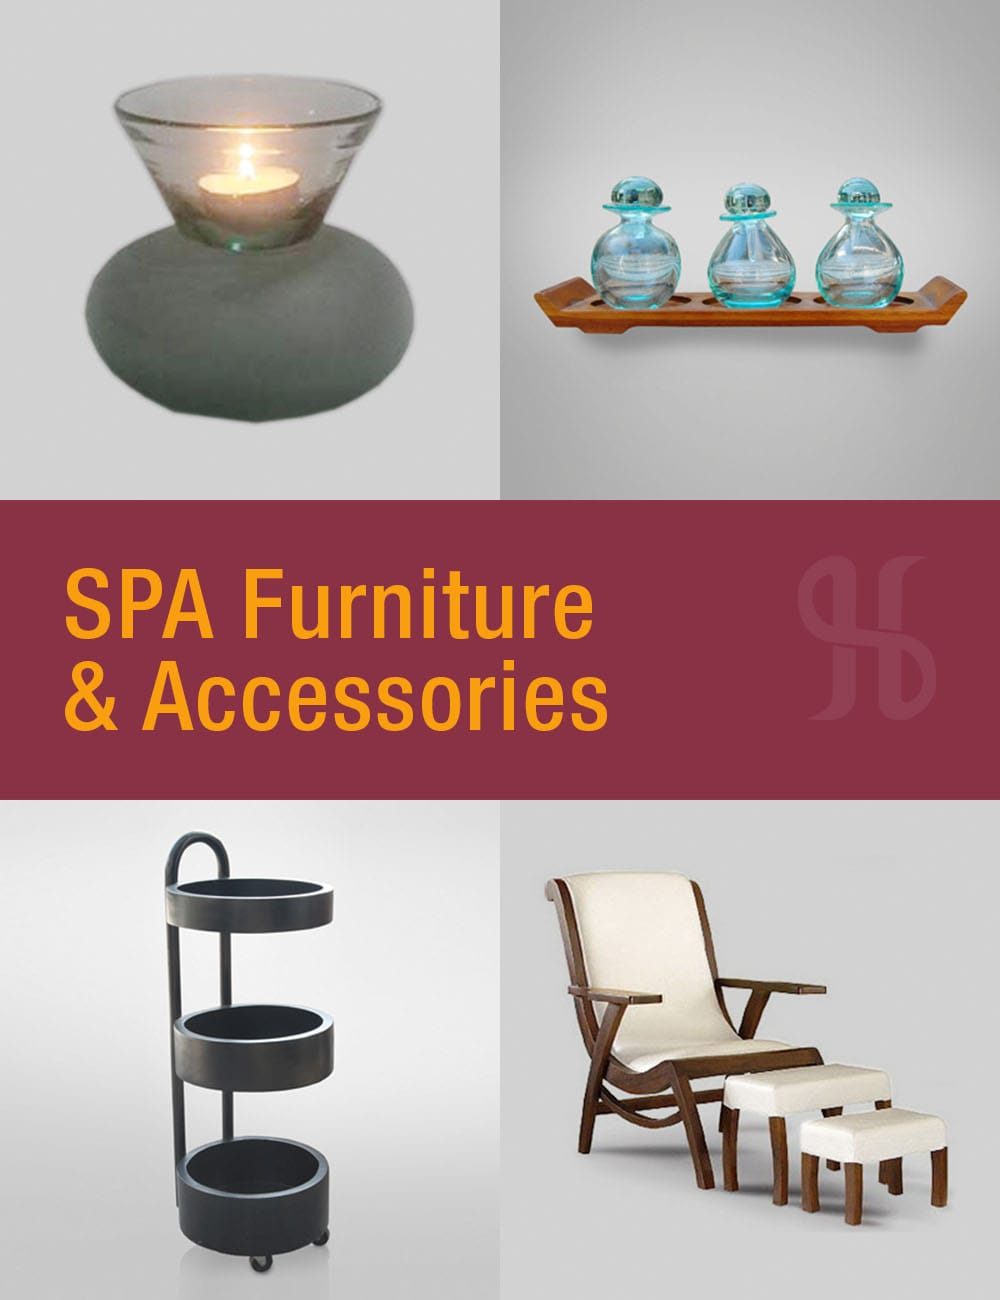 SPA Furniture and Accessories